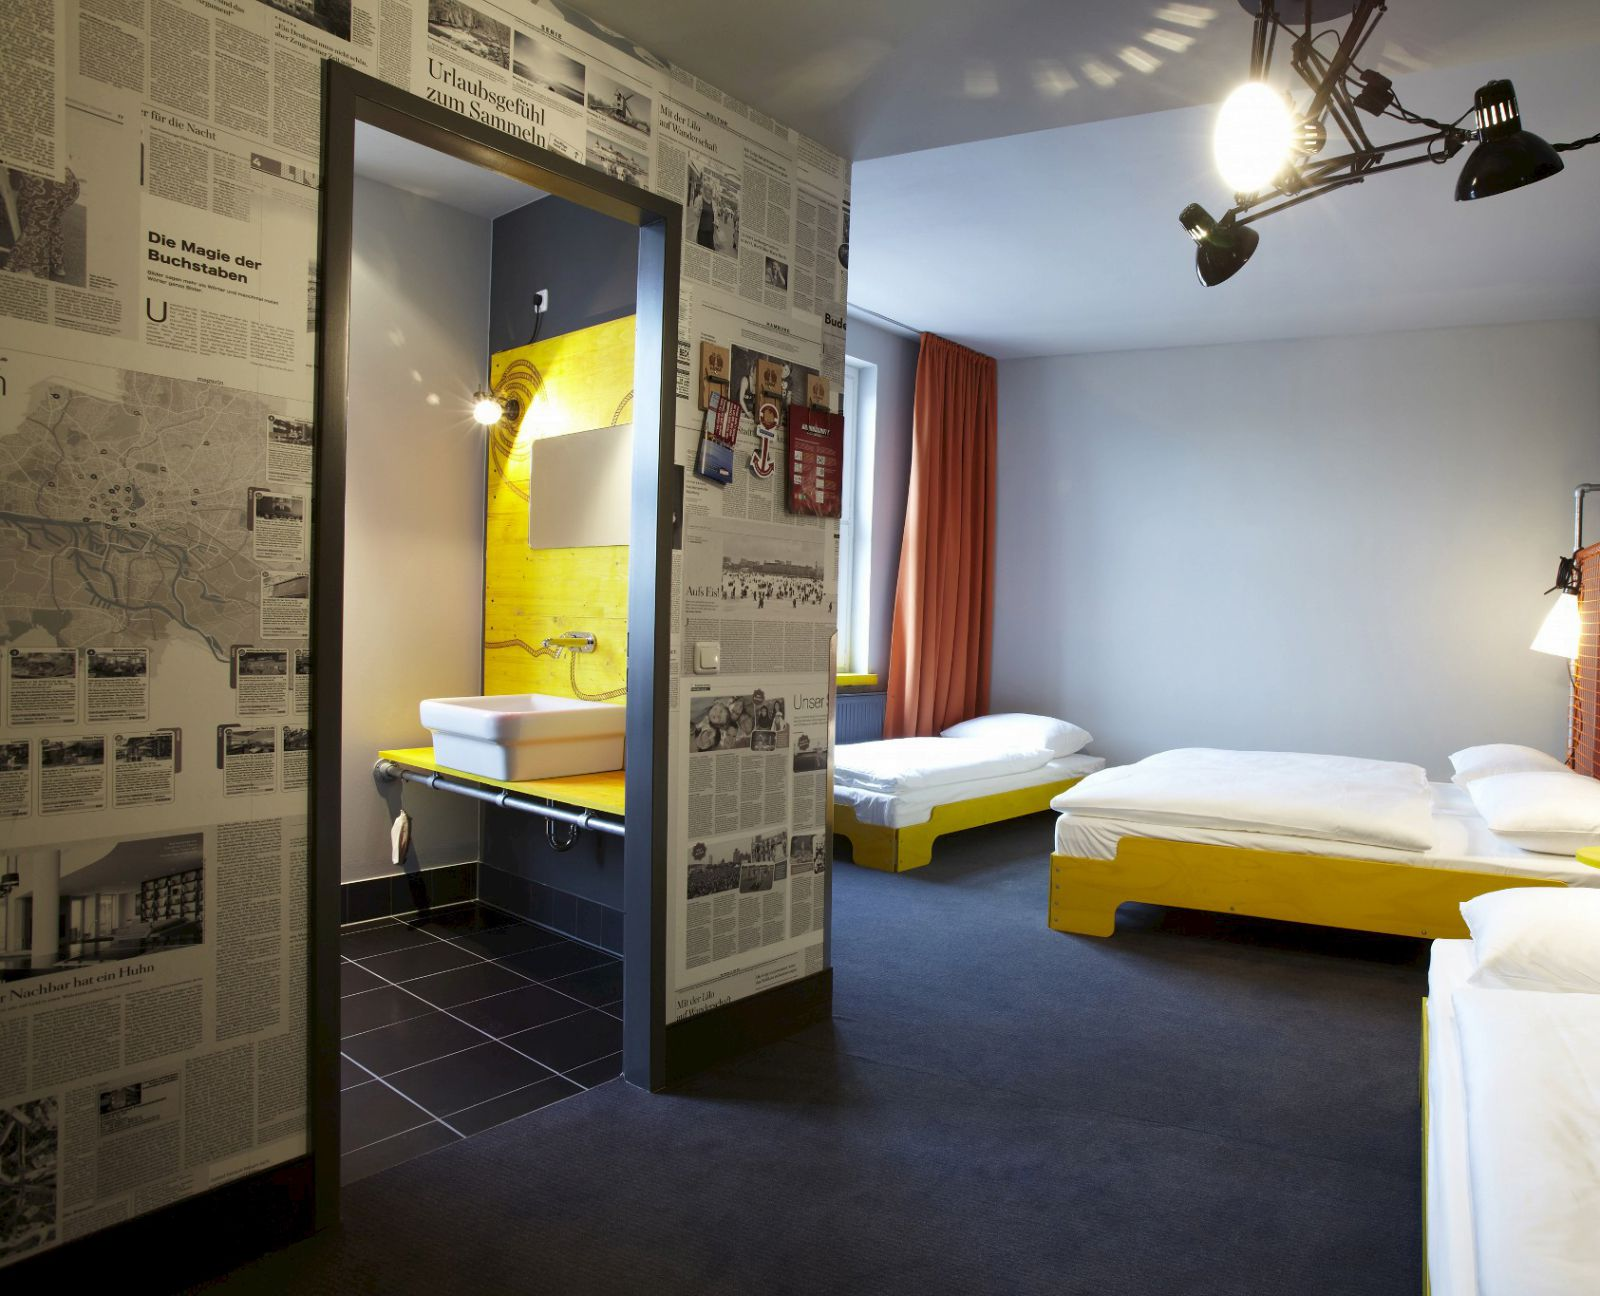 vierbettbude hostel hamburg st pauli superbude. Black Bedroom Furniture Sets. Home Design Ideas